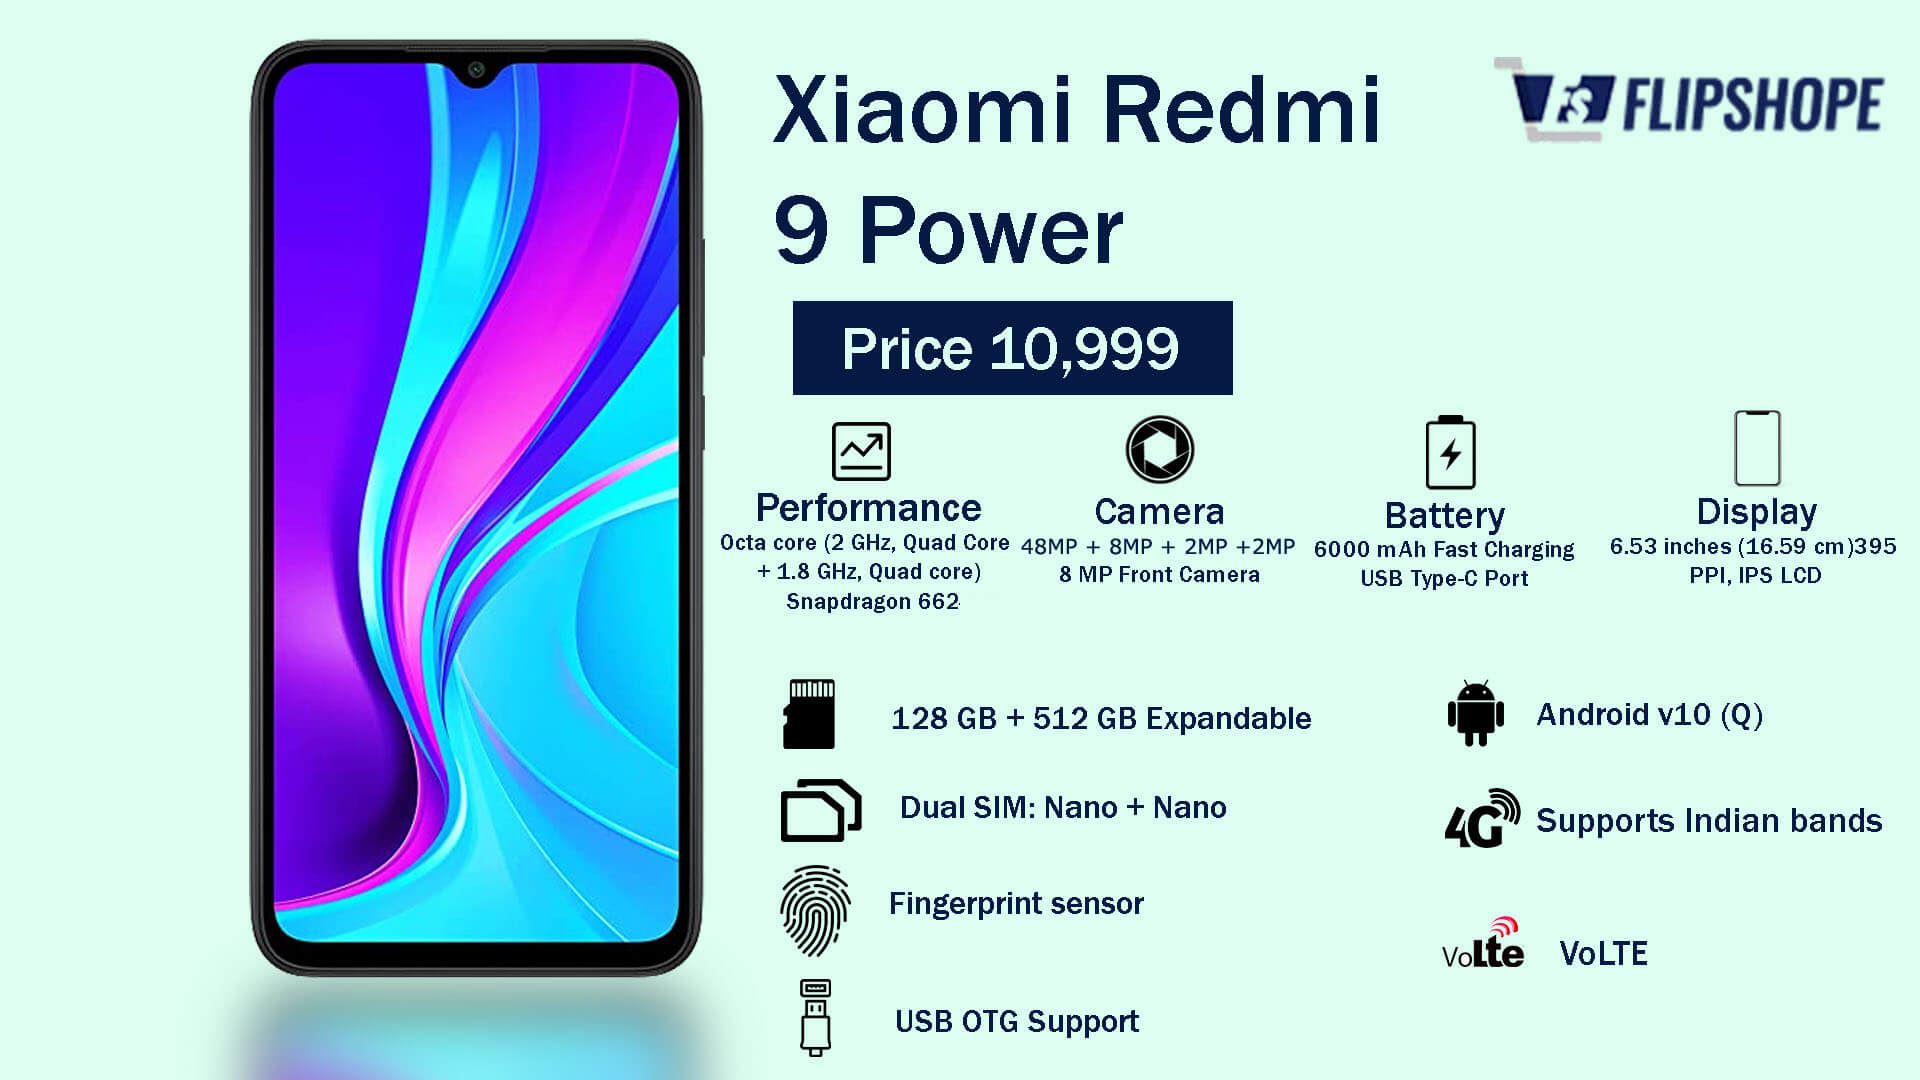 Xiaomi Redmi 9 Power Specifications